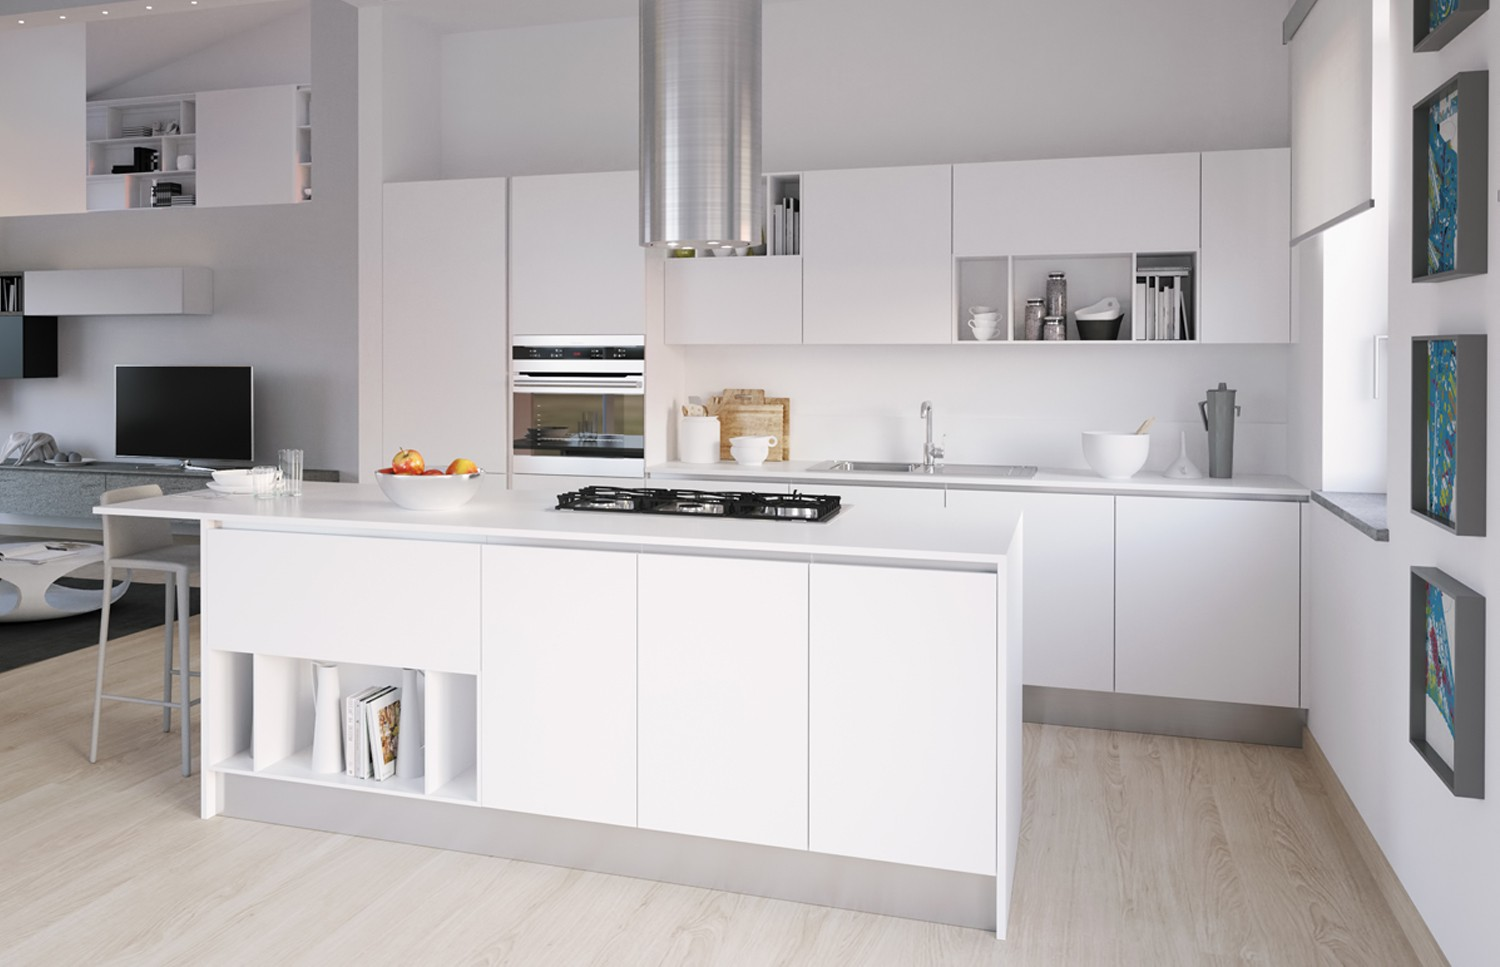 Stunning Cucine A Buon Prezzo Dove Contemporary - Ideas & Design ...